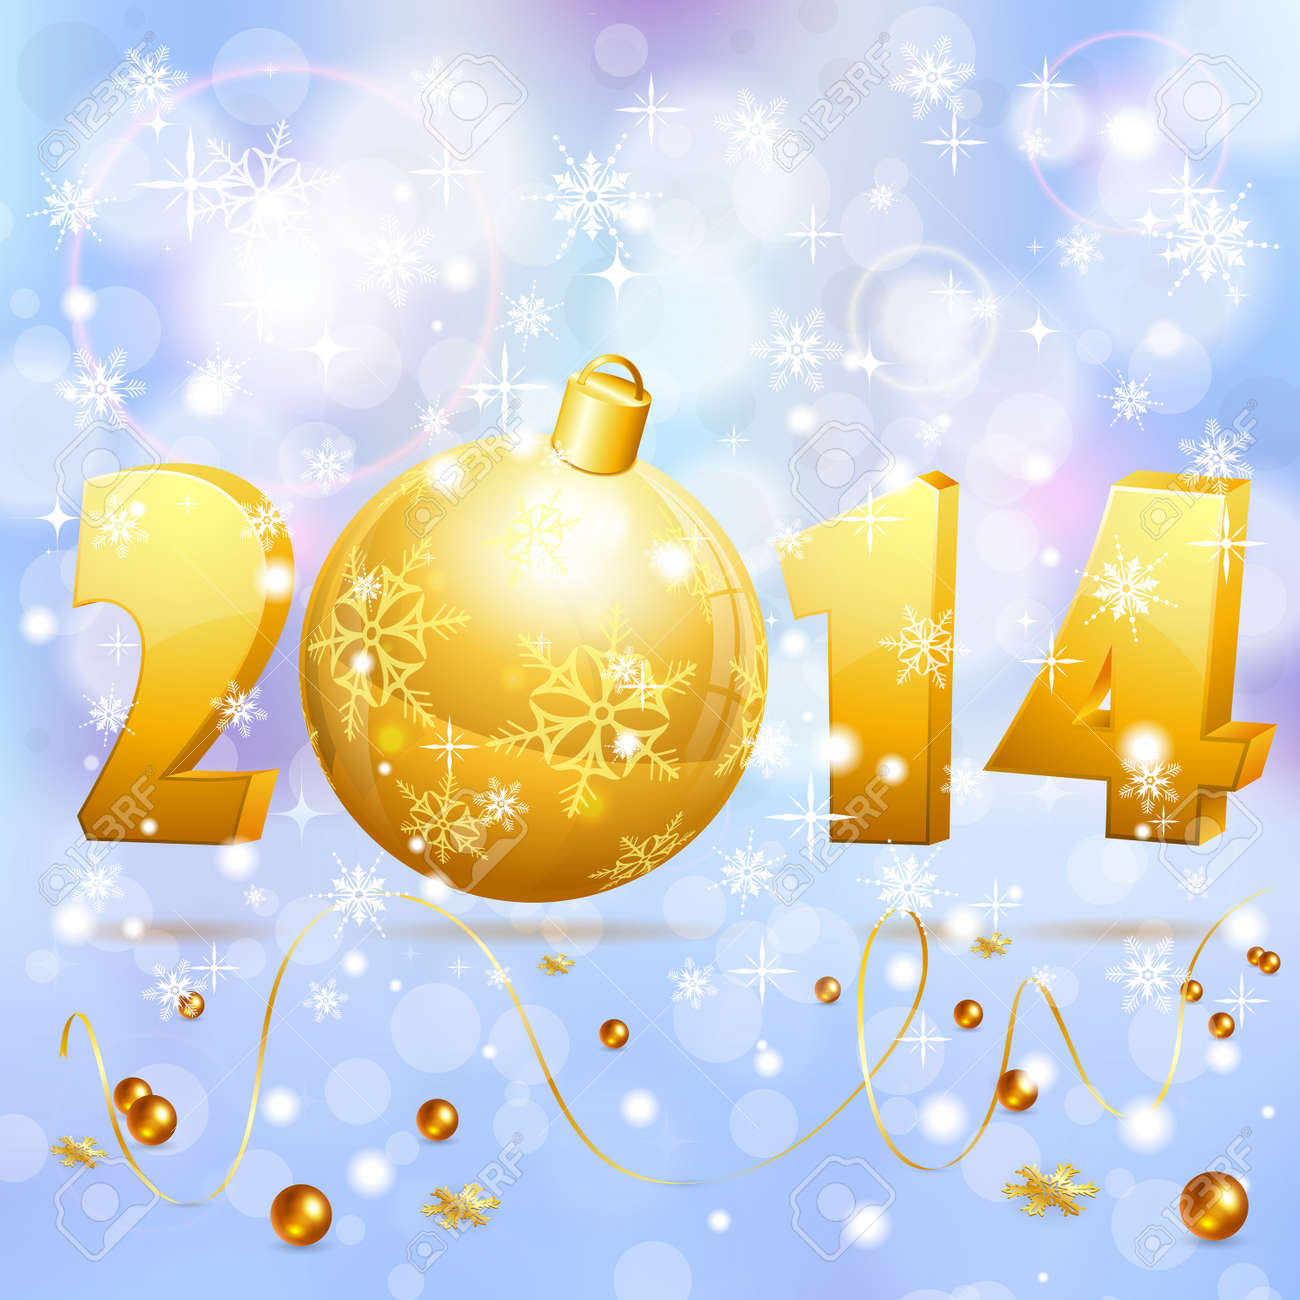 New Year background with stylized 2014 with Bauble, element for design, vector illustration Stock Vector - 23103574